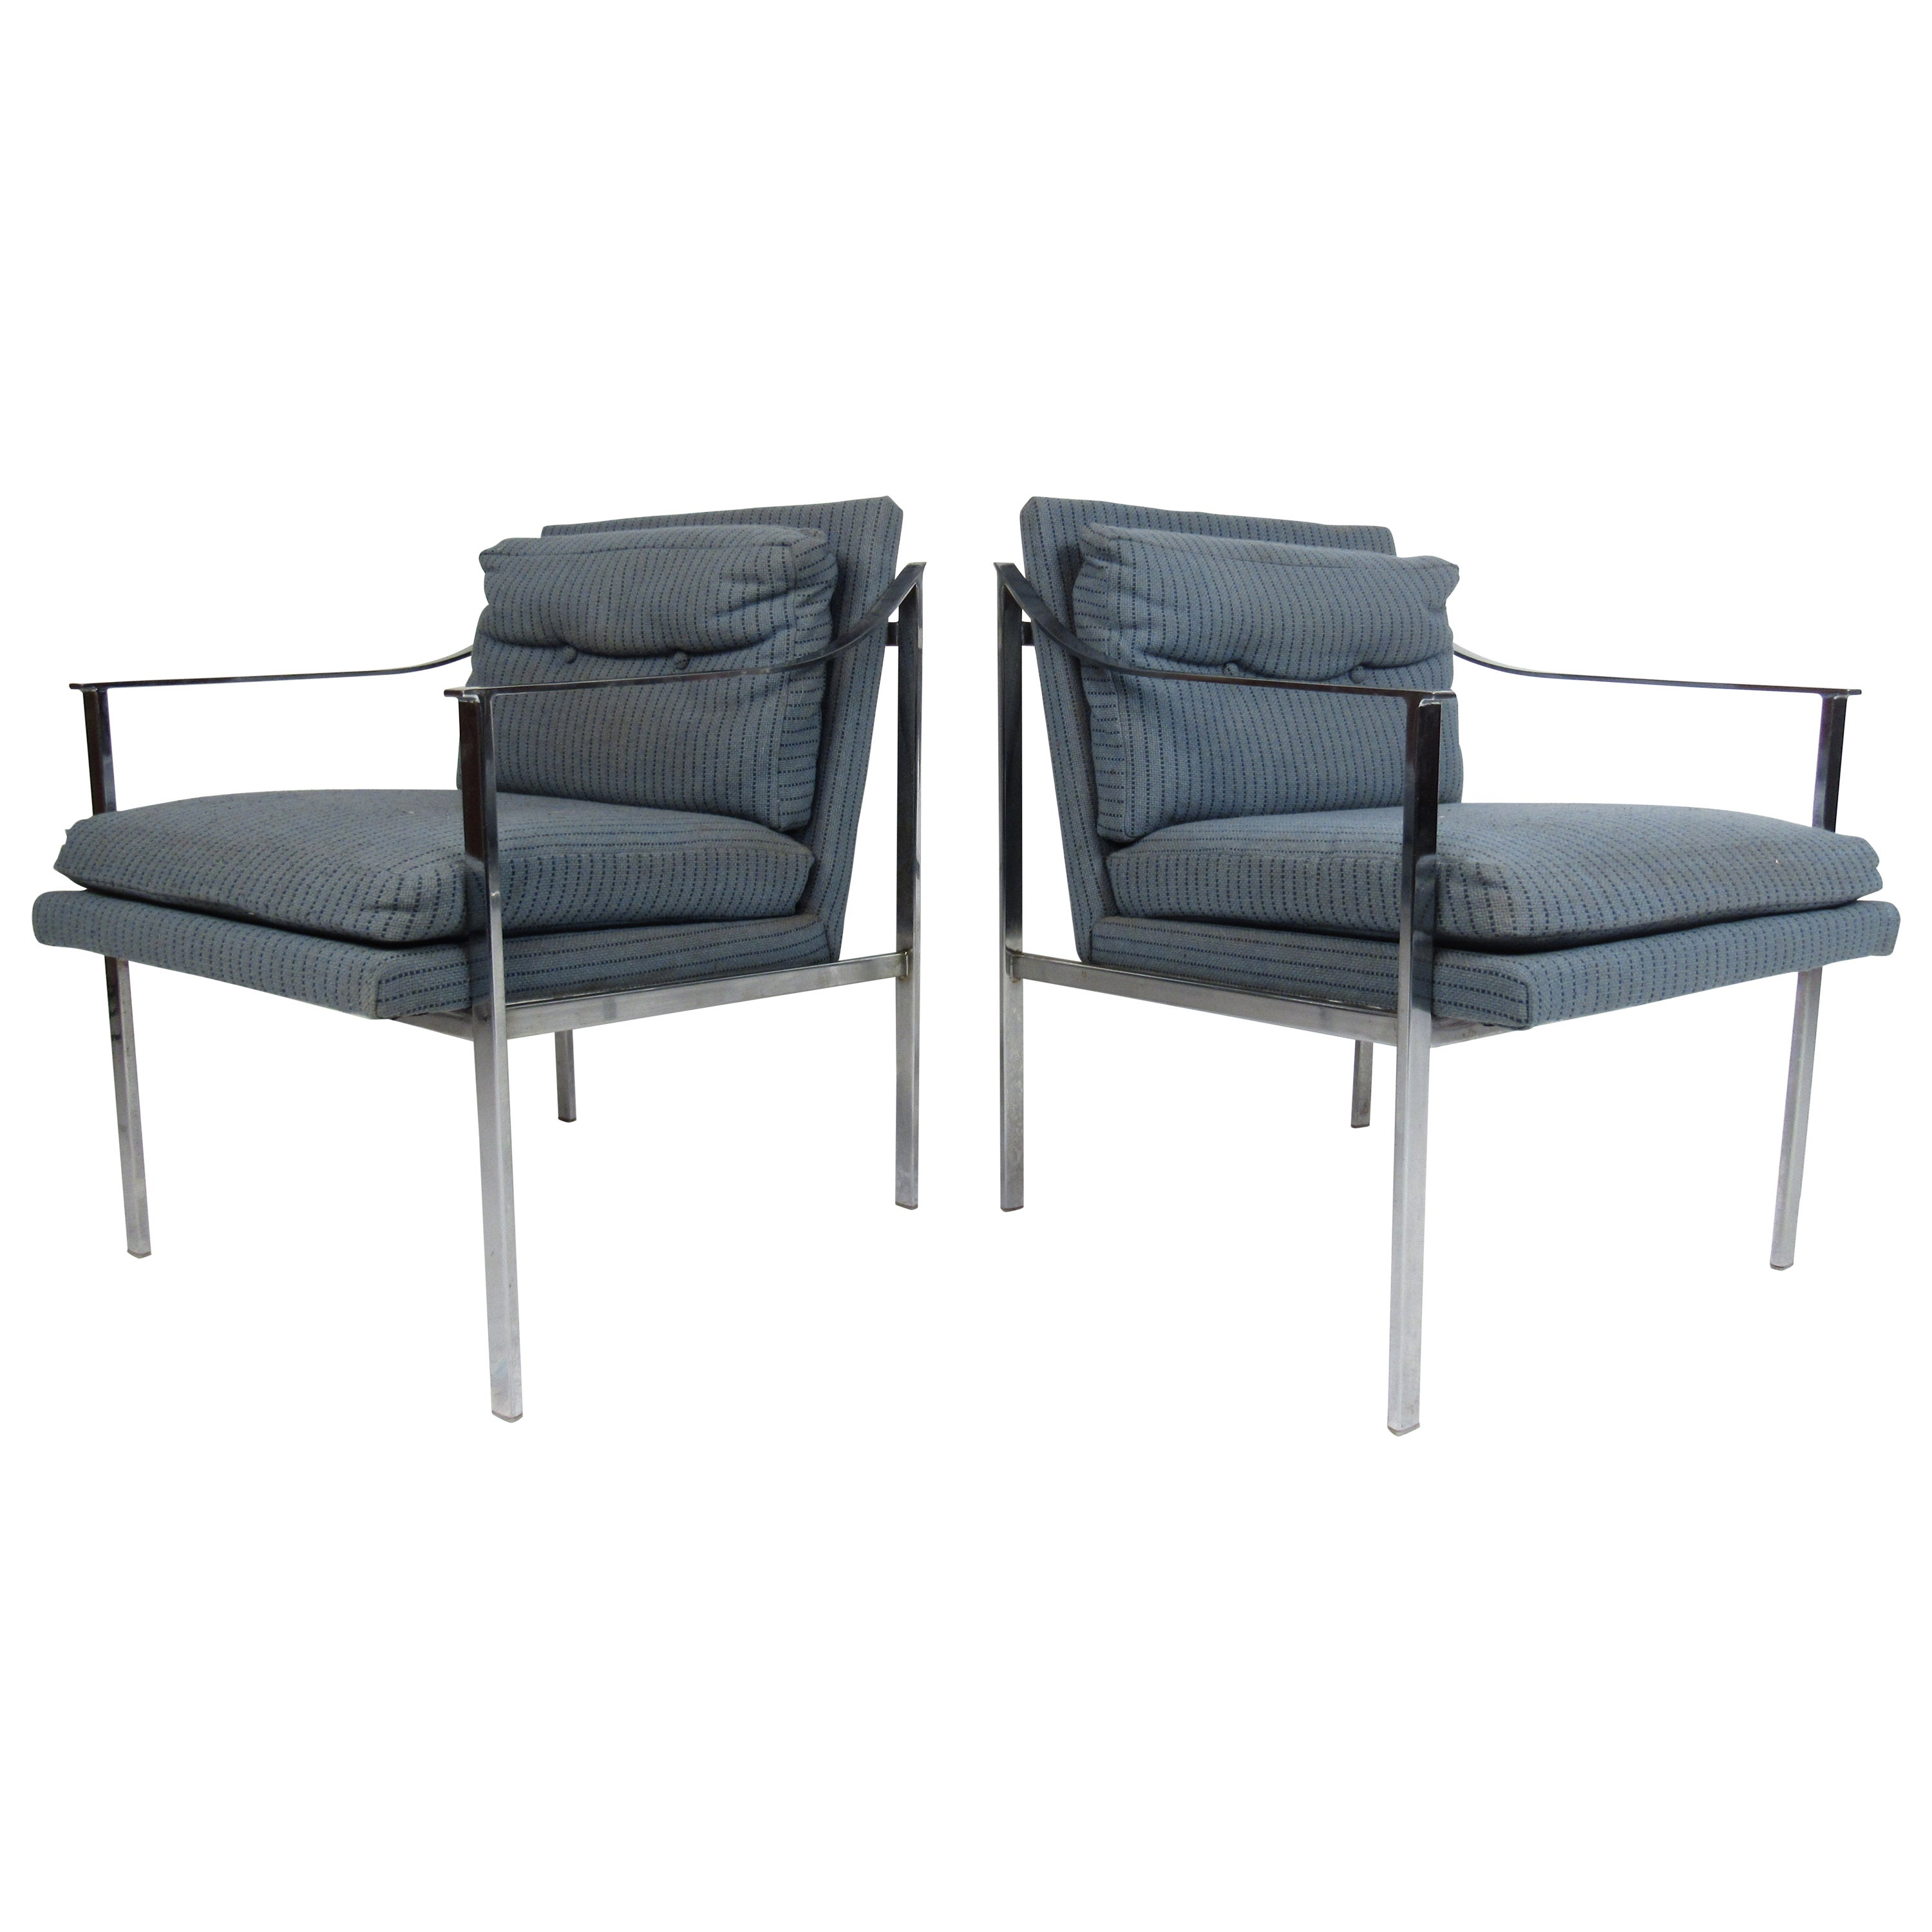 Pair of Mid-Century Modern Chrome Lounge Chairs